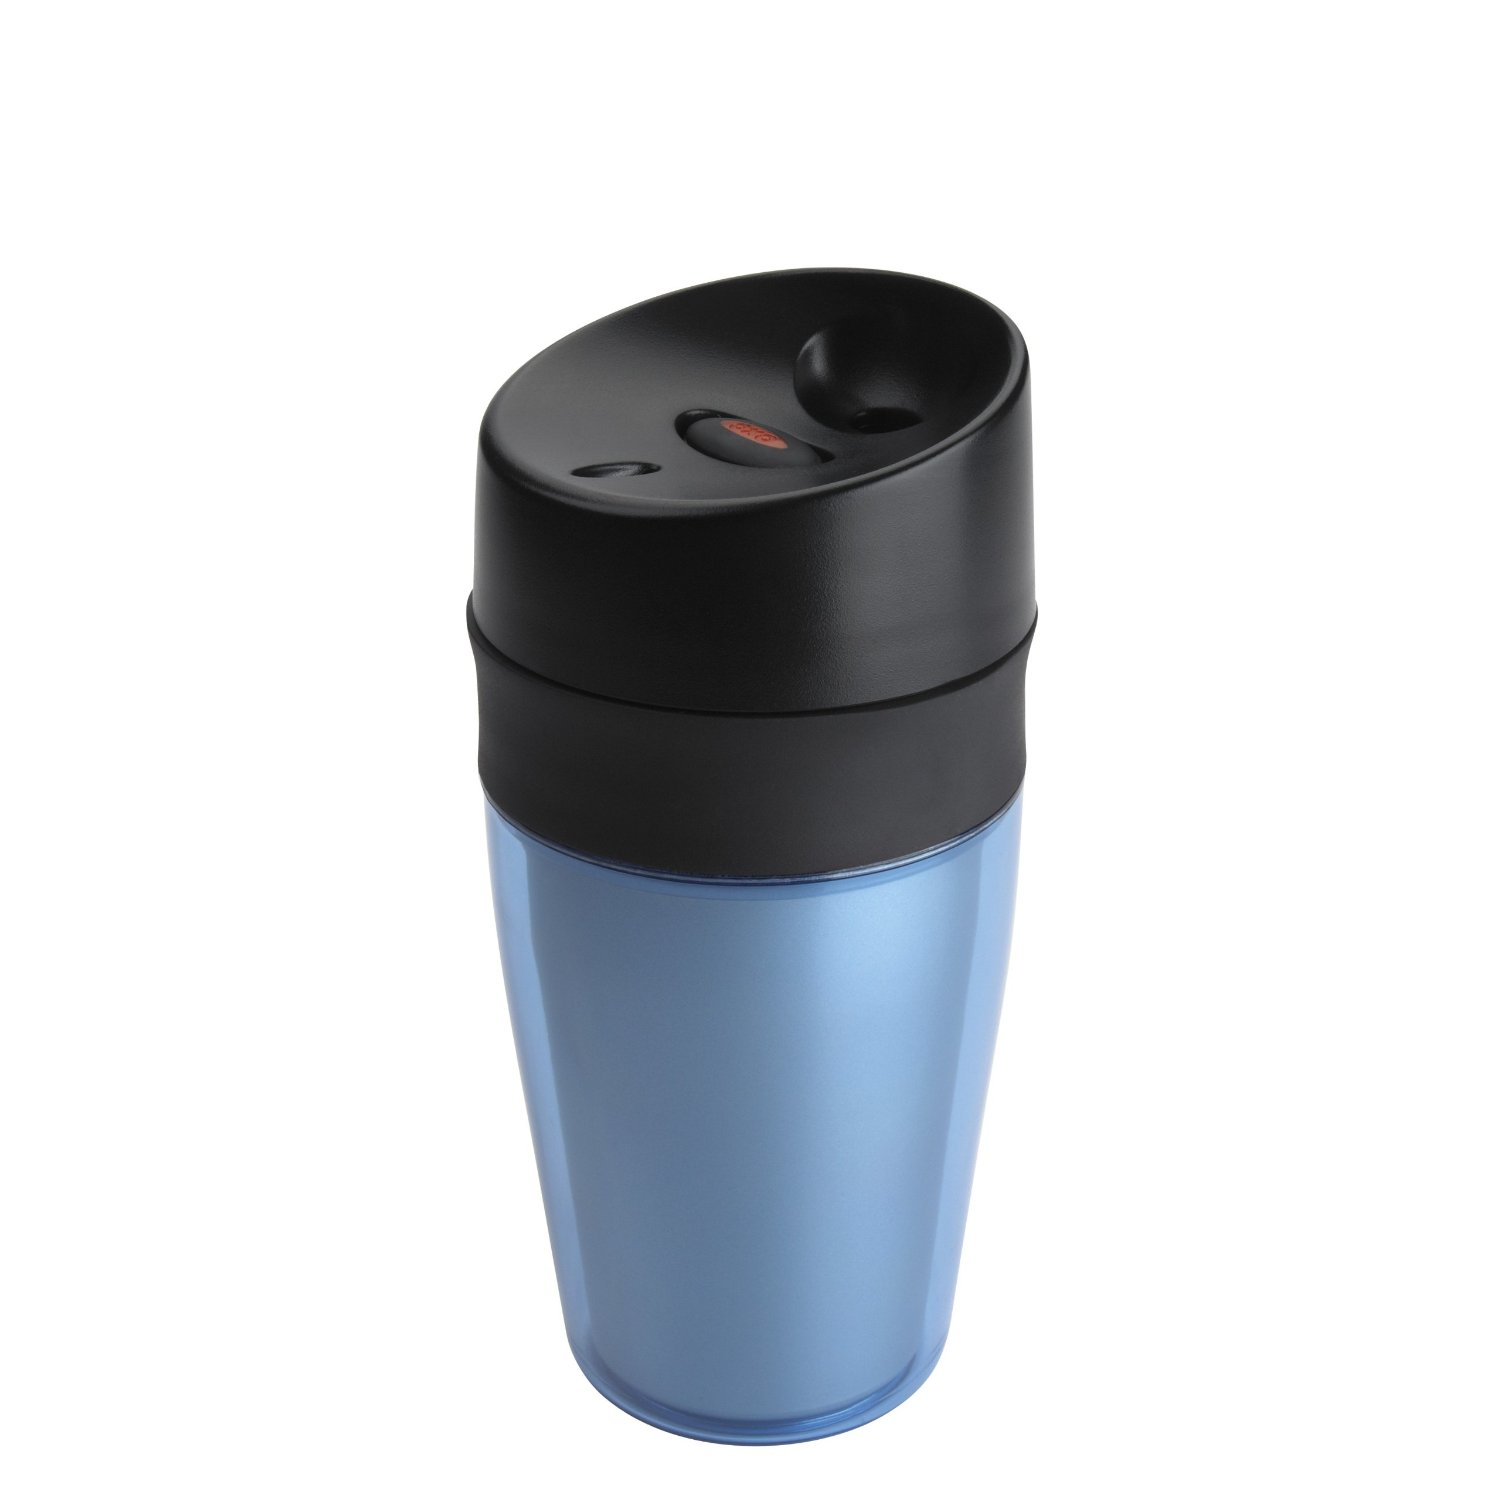 The 10 ounce travel mug short enough for one cup coffee Top 10 coffee mugs